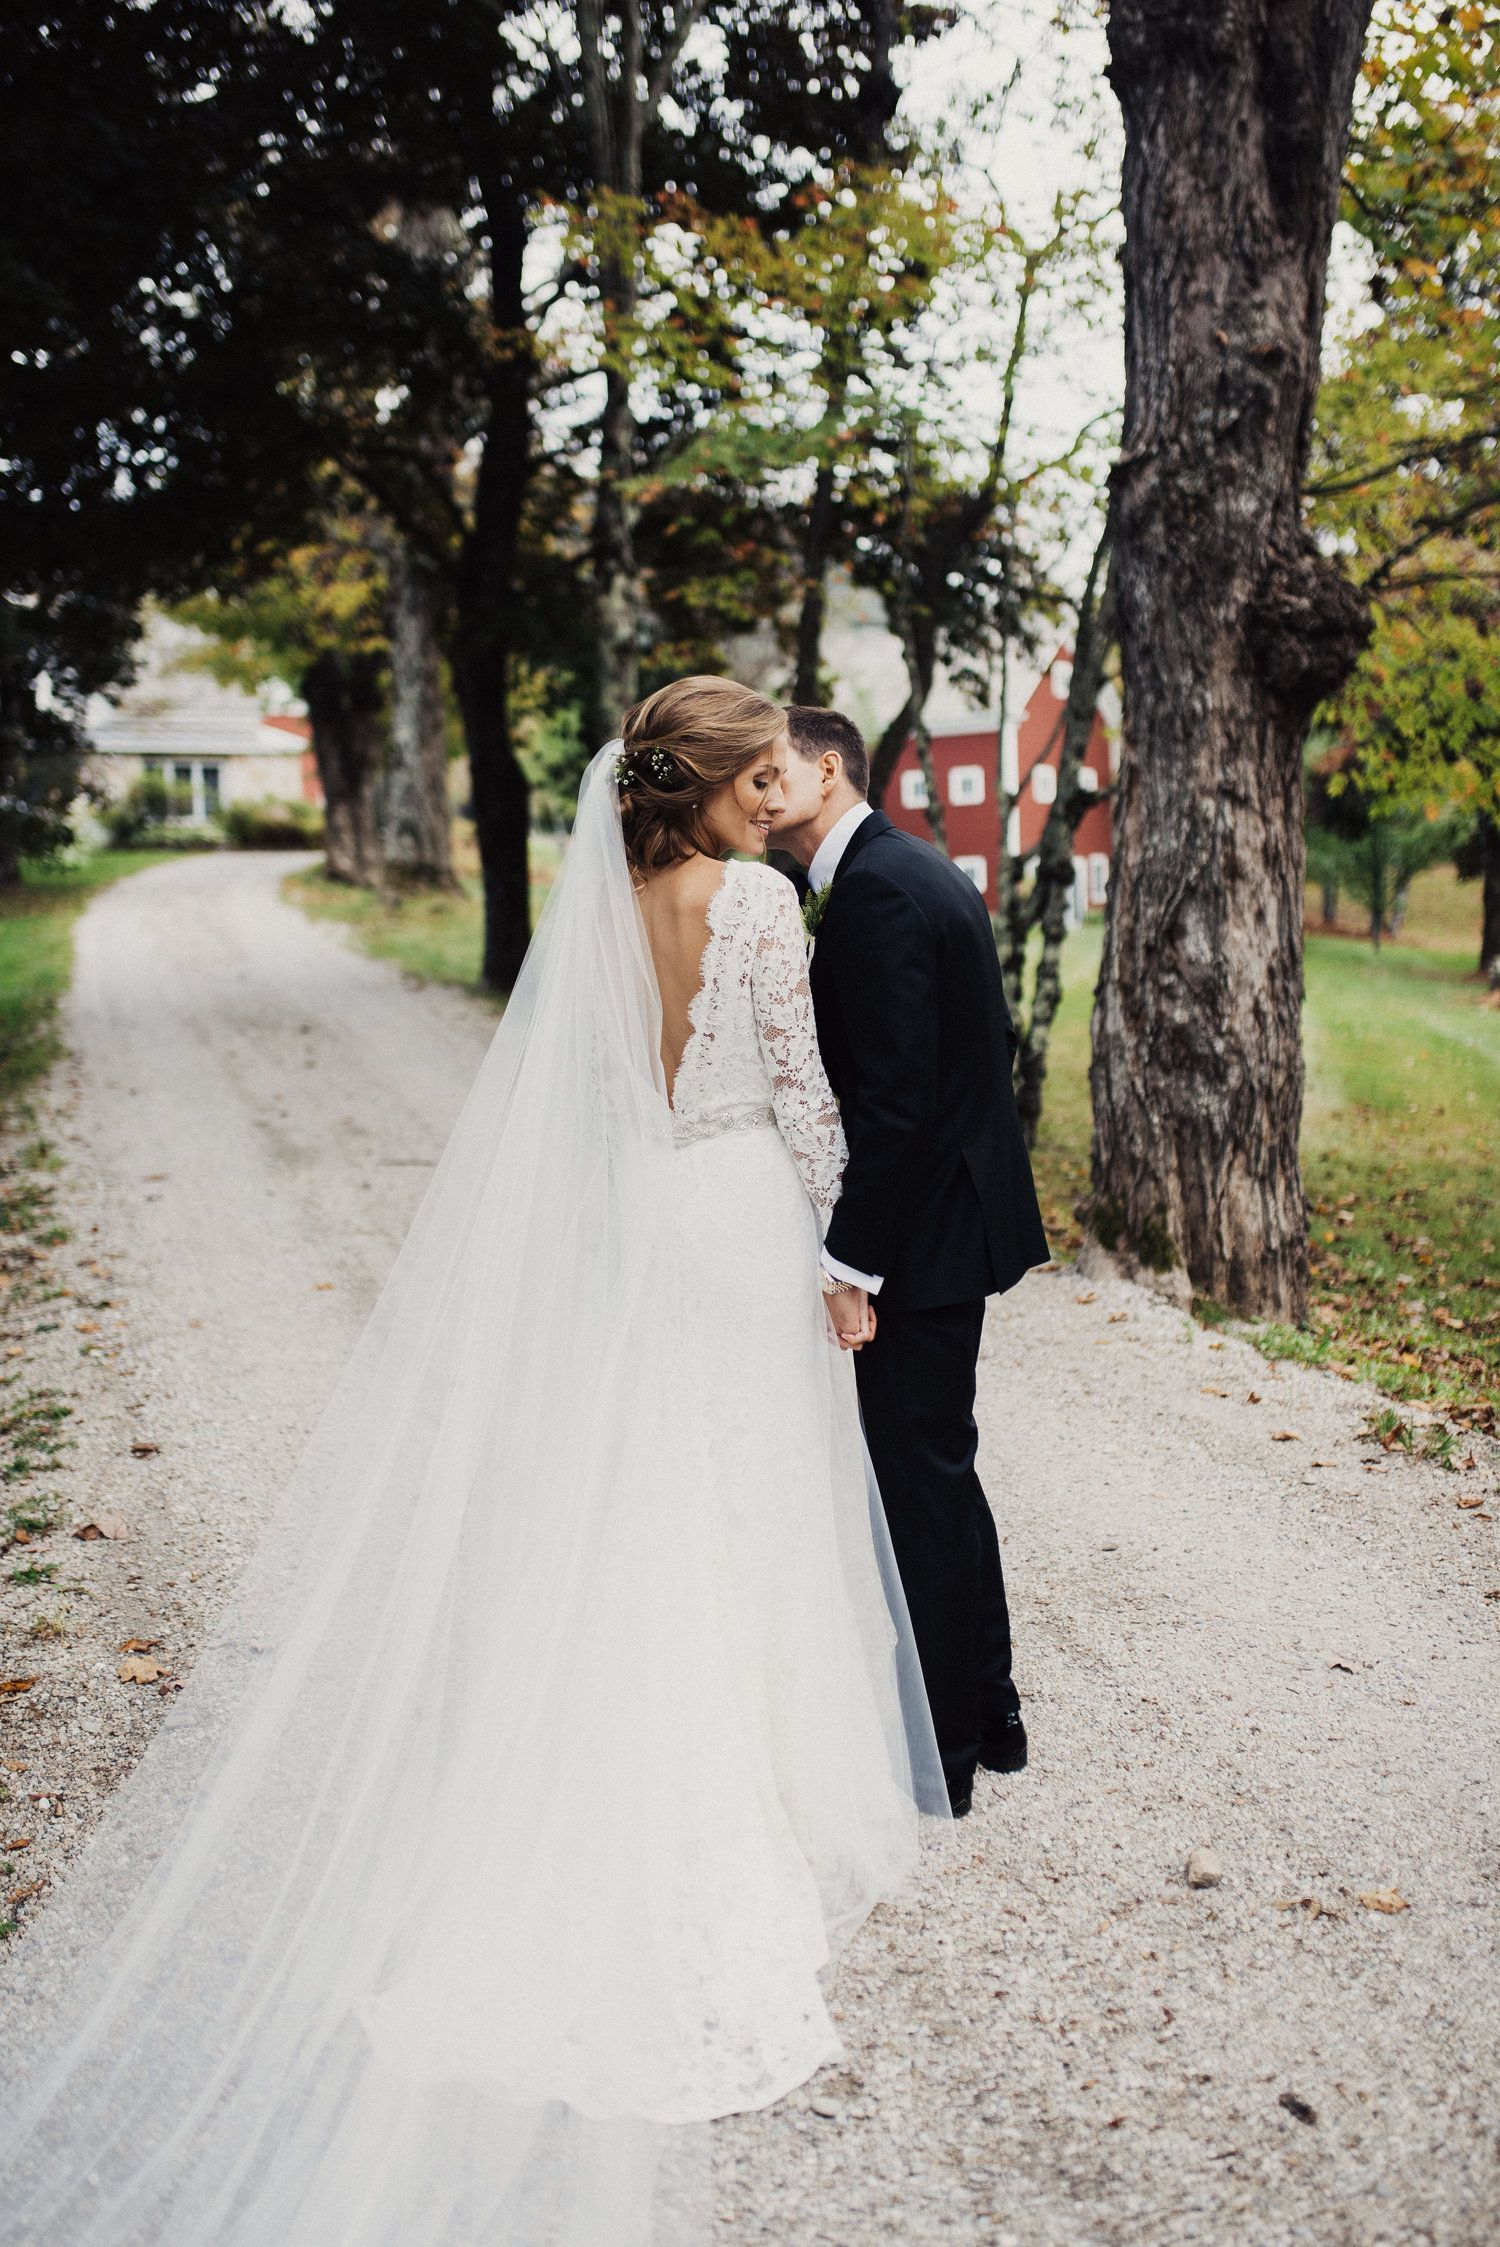 Dress for barn wedding  Eden Strader Photography Vermont wedding photographer rustic